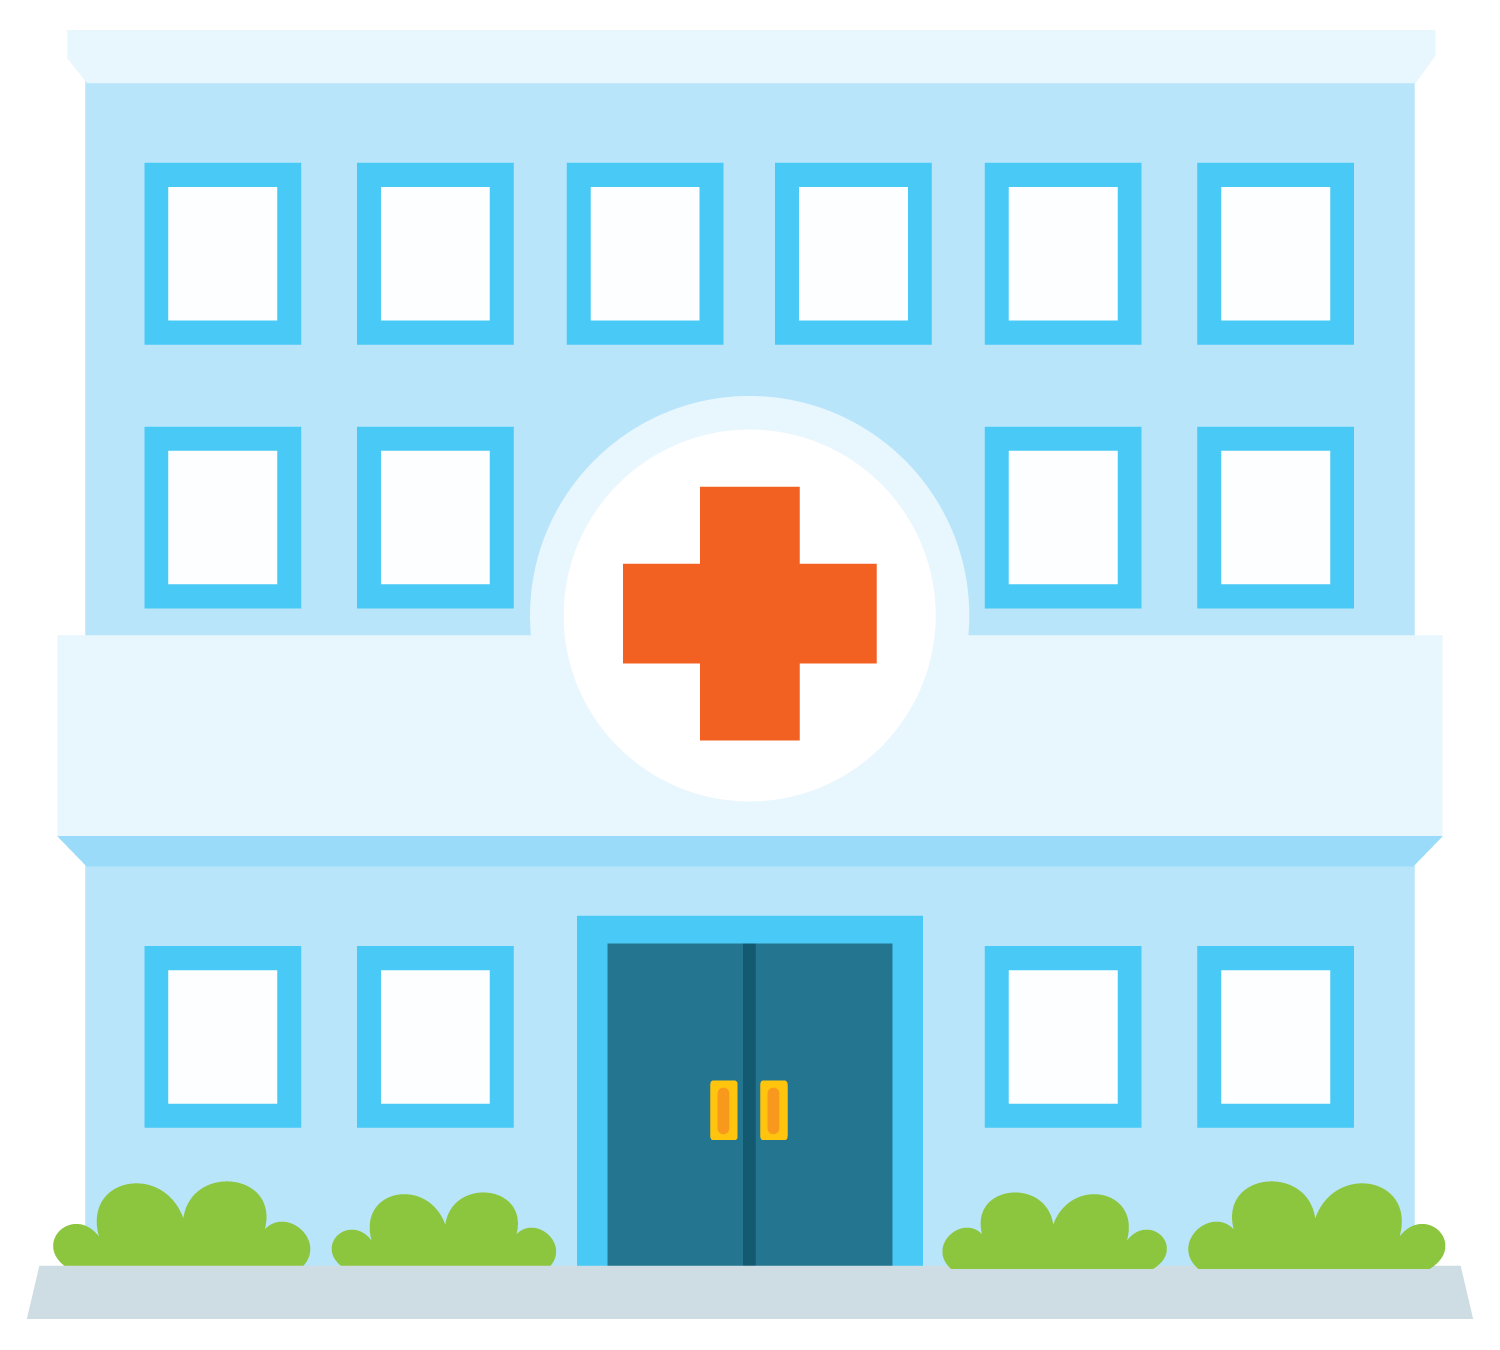 Medical building clipart svg freeuse stock Free to Use & Public Domain Hospital Clip Art svg freeuse stock